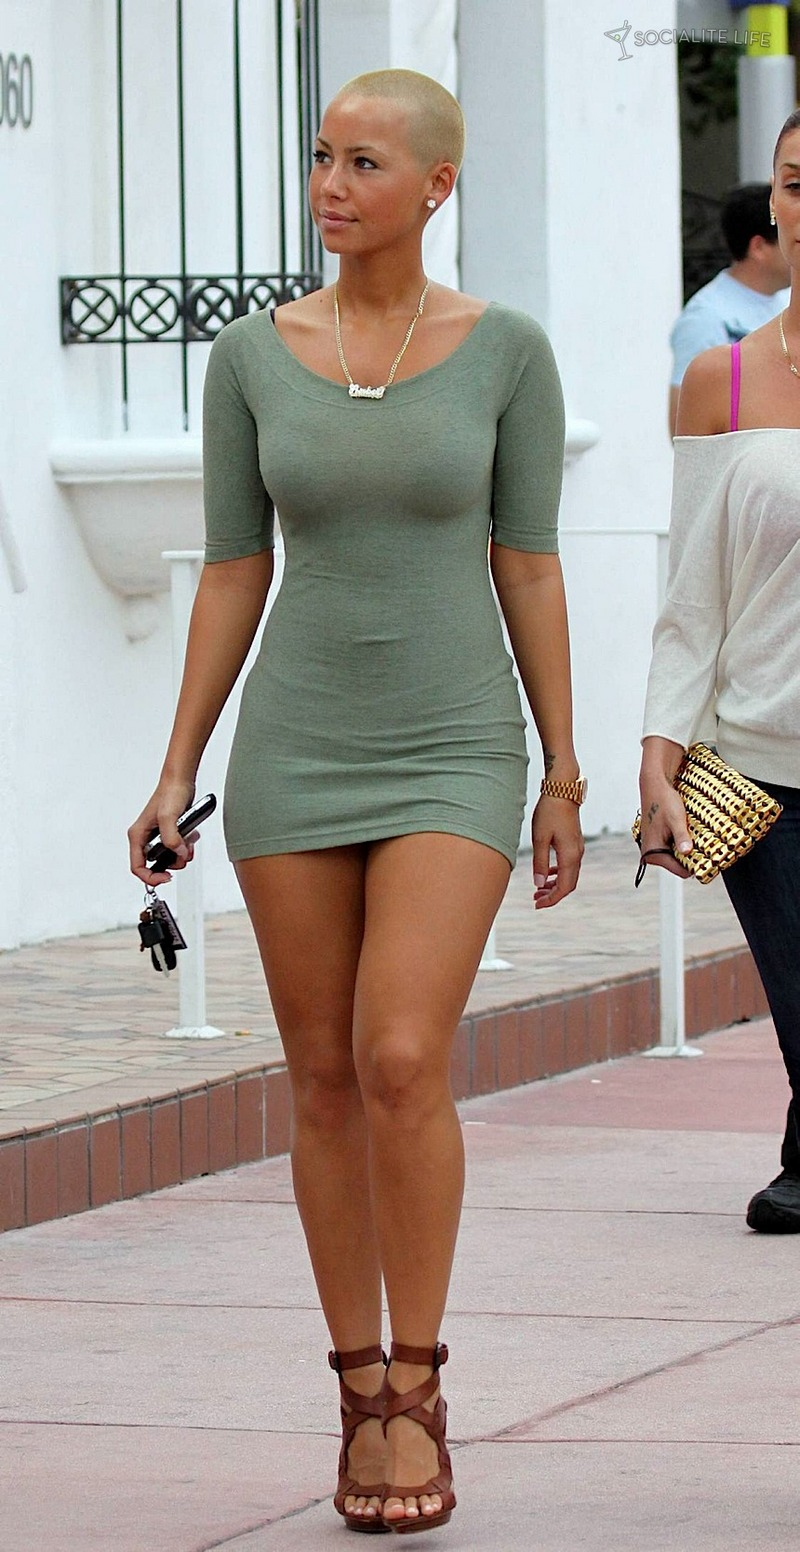 top 10 amber rose photos (nsfw!) - celebs unmasked